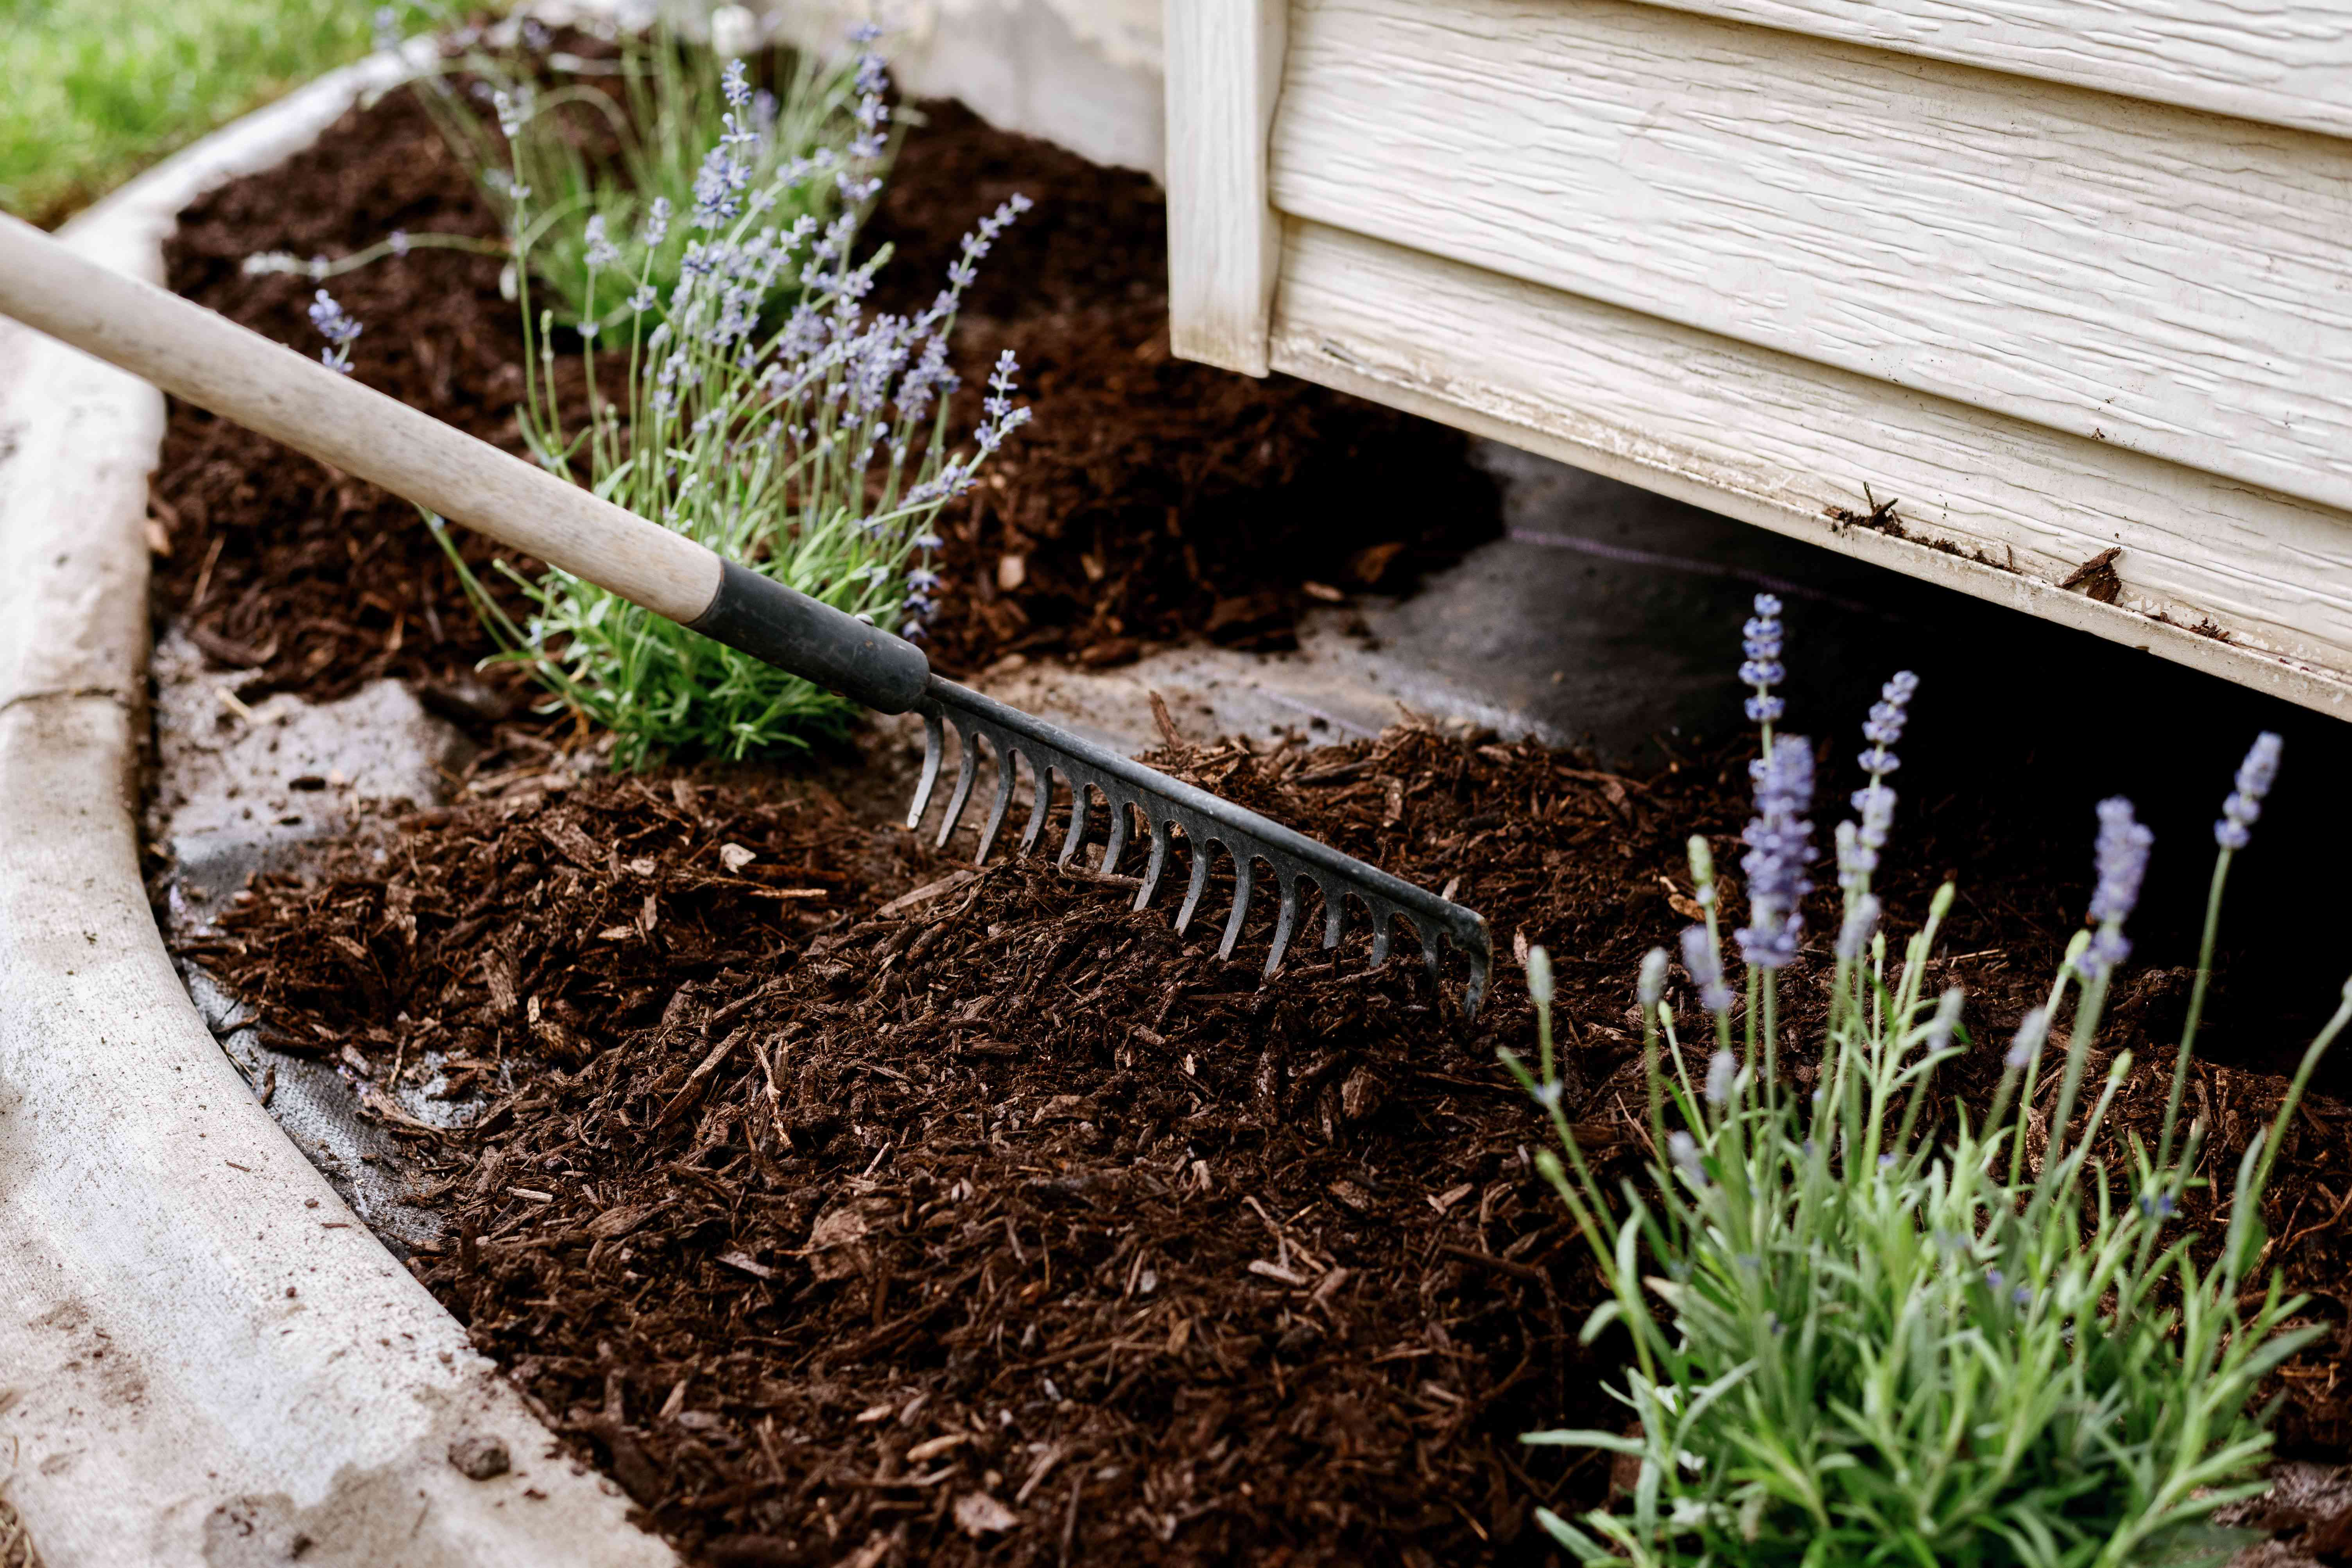 Mulch being spread with rake on side of house next to lavender plants